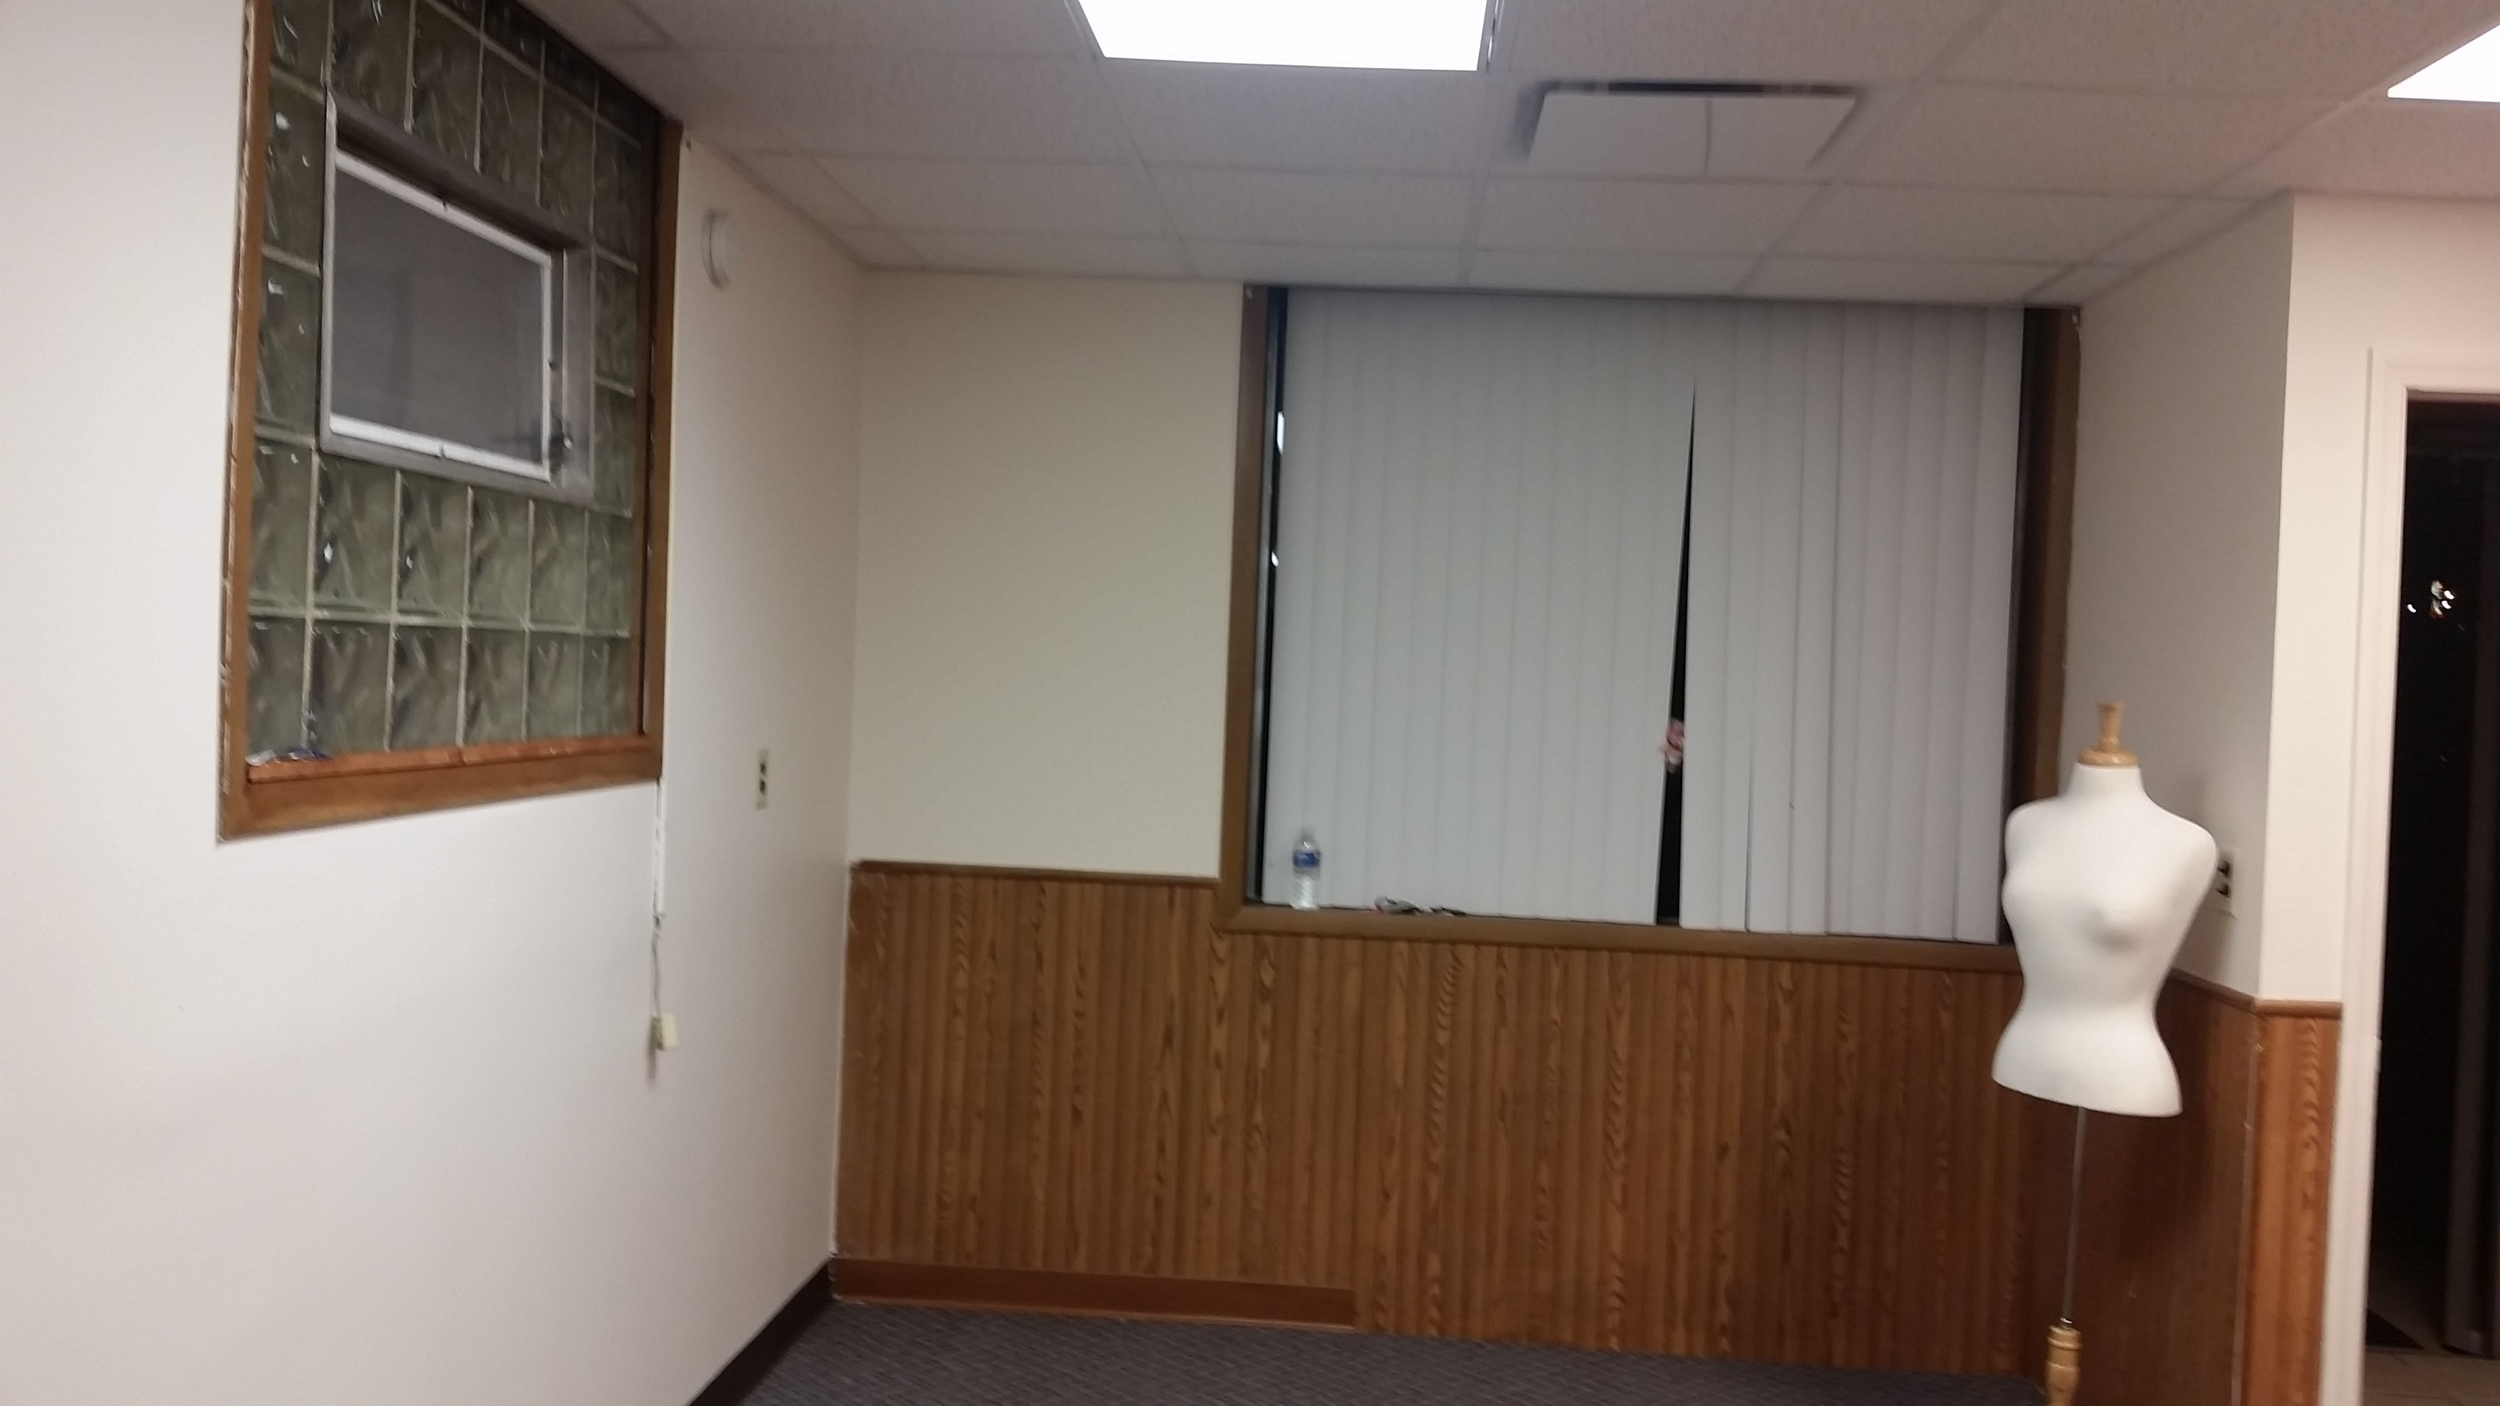 Here's a before.  Glass block windows, vertical blinds and paneling.  Says office, not boutique.